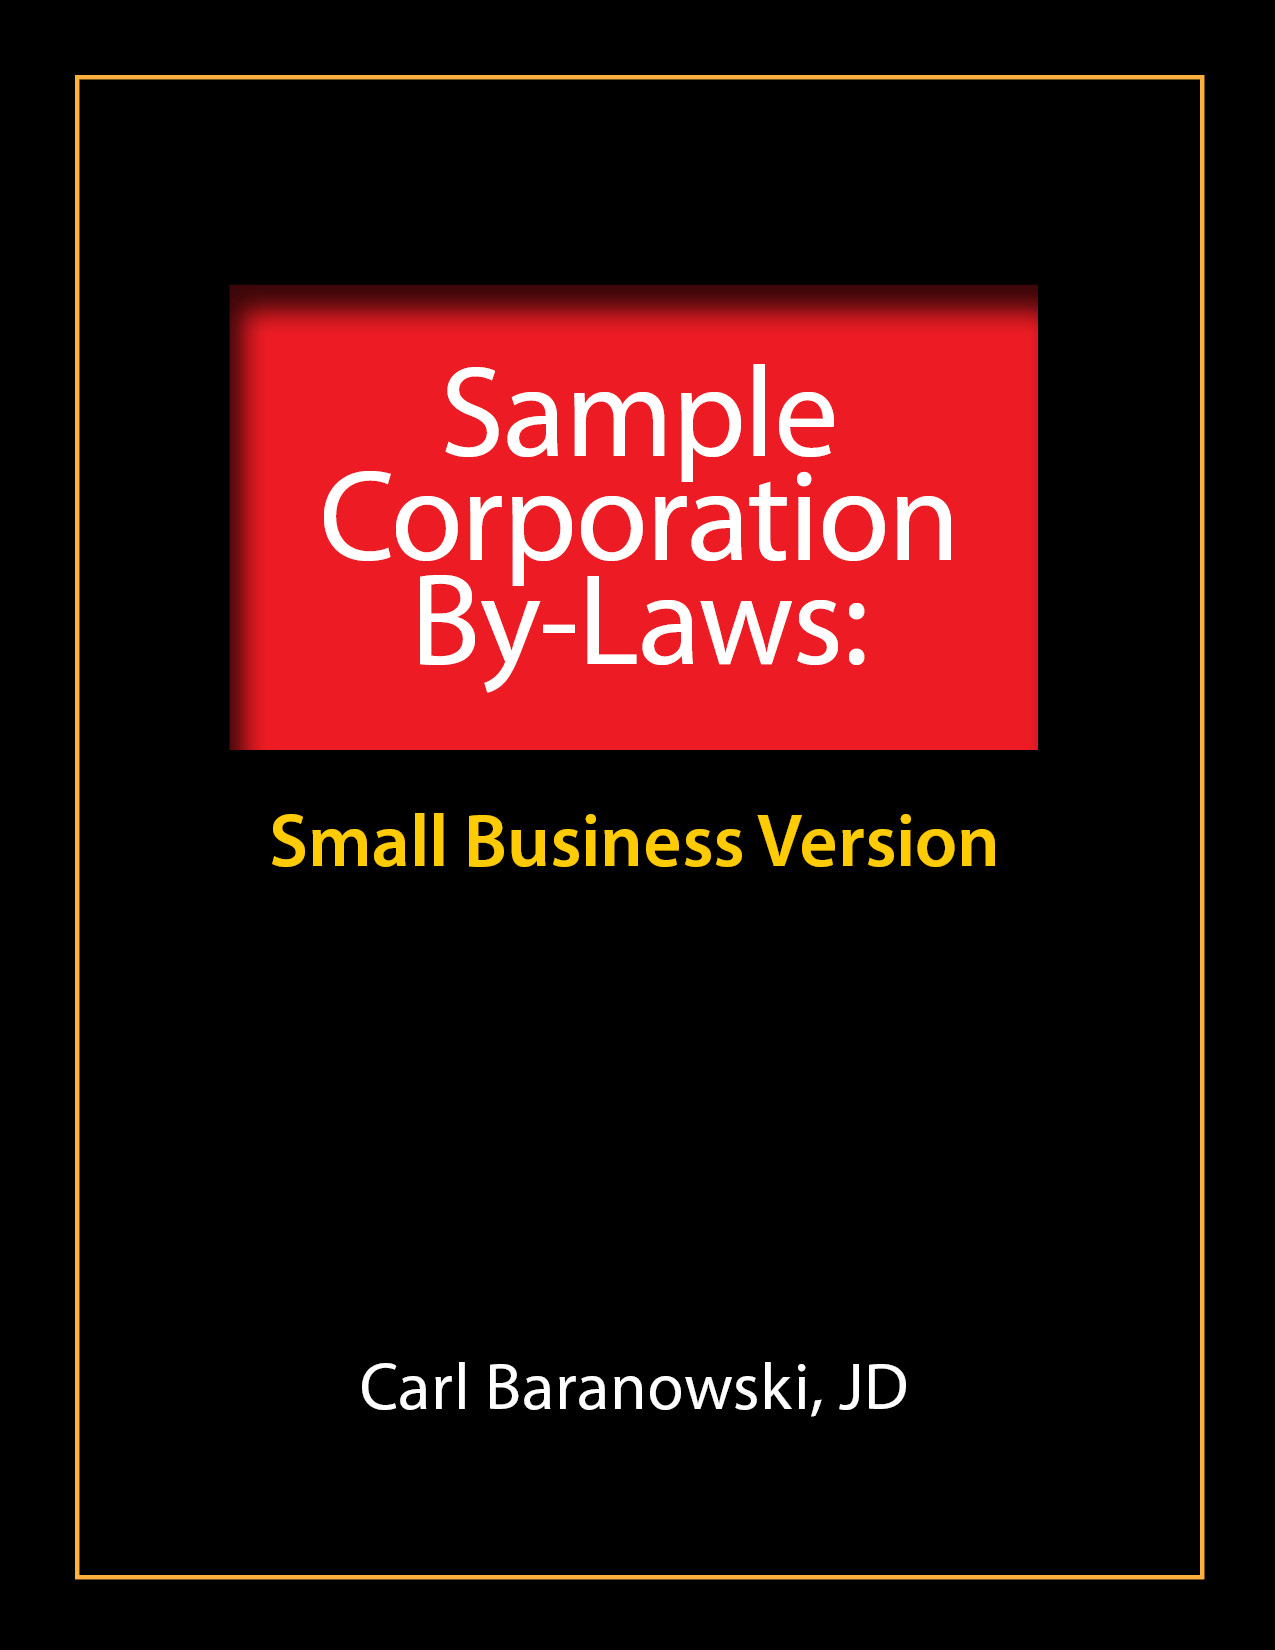 S Corp Operating Agreement Template Sample Corporate Laws Evergreen Small Business